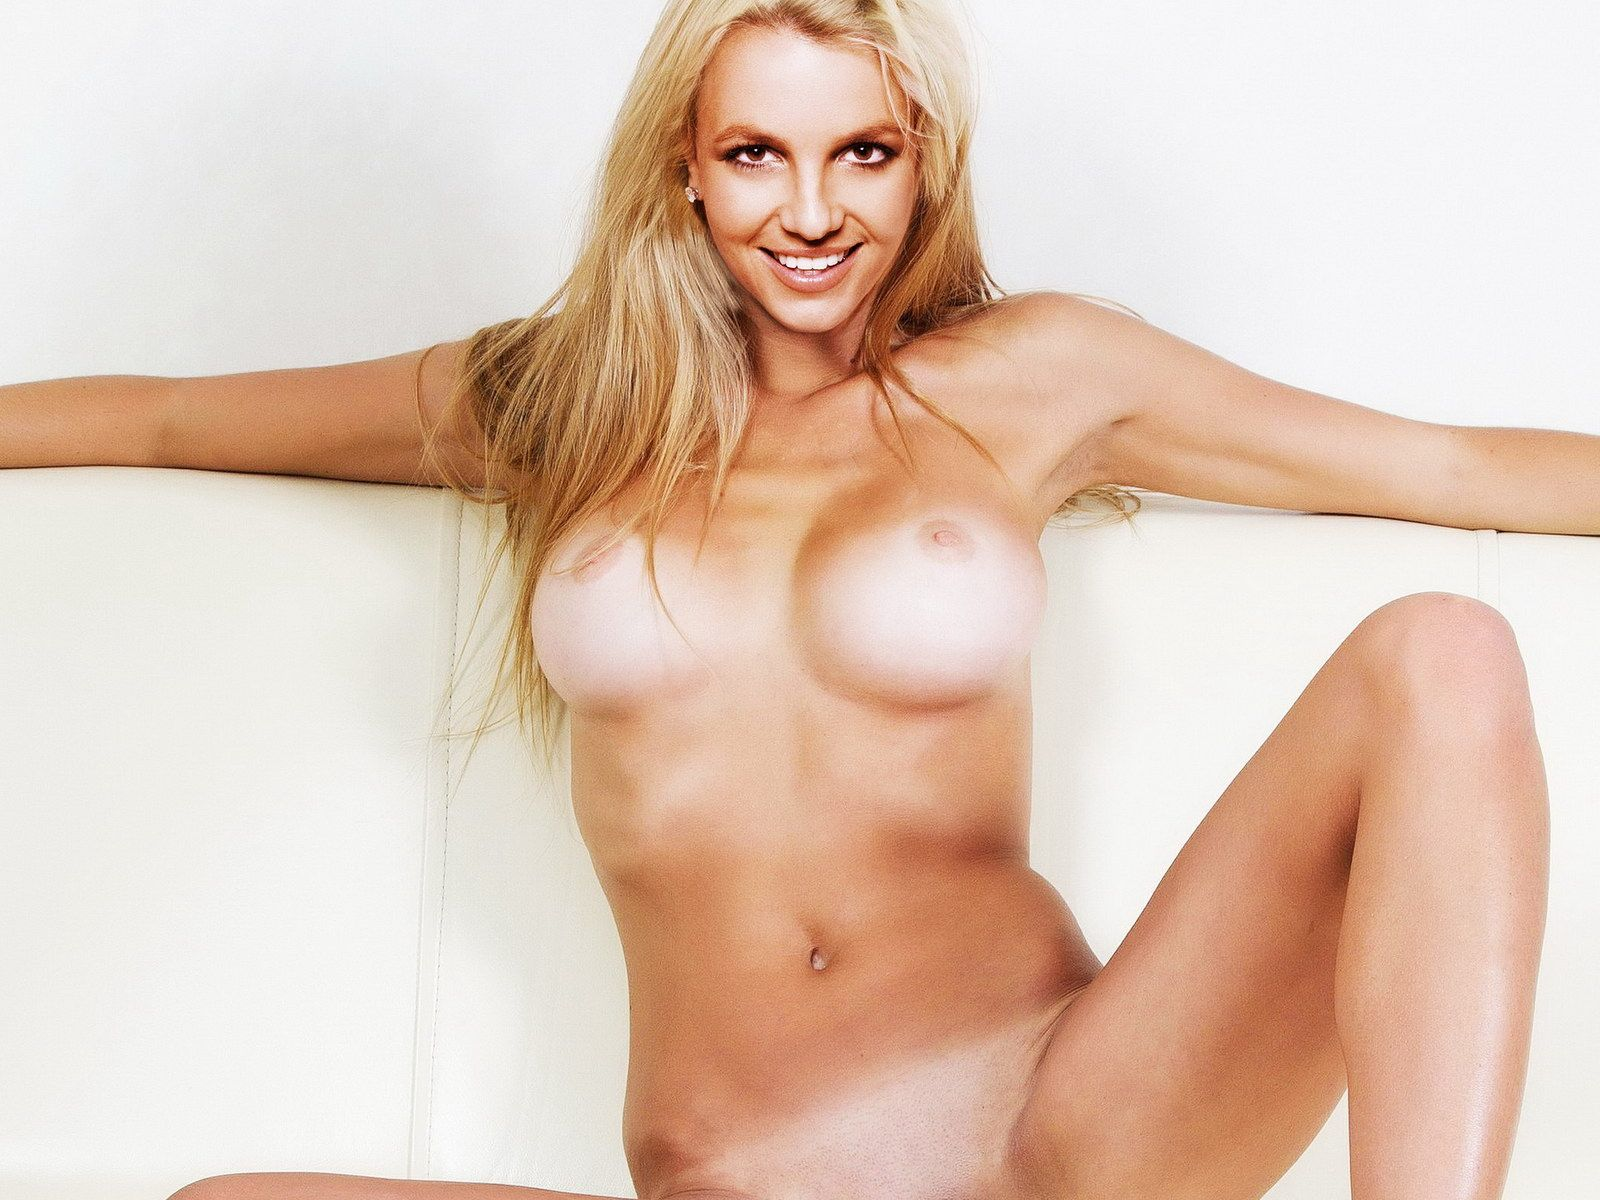 britney spears playboy pictures